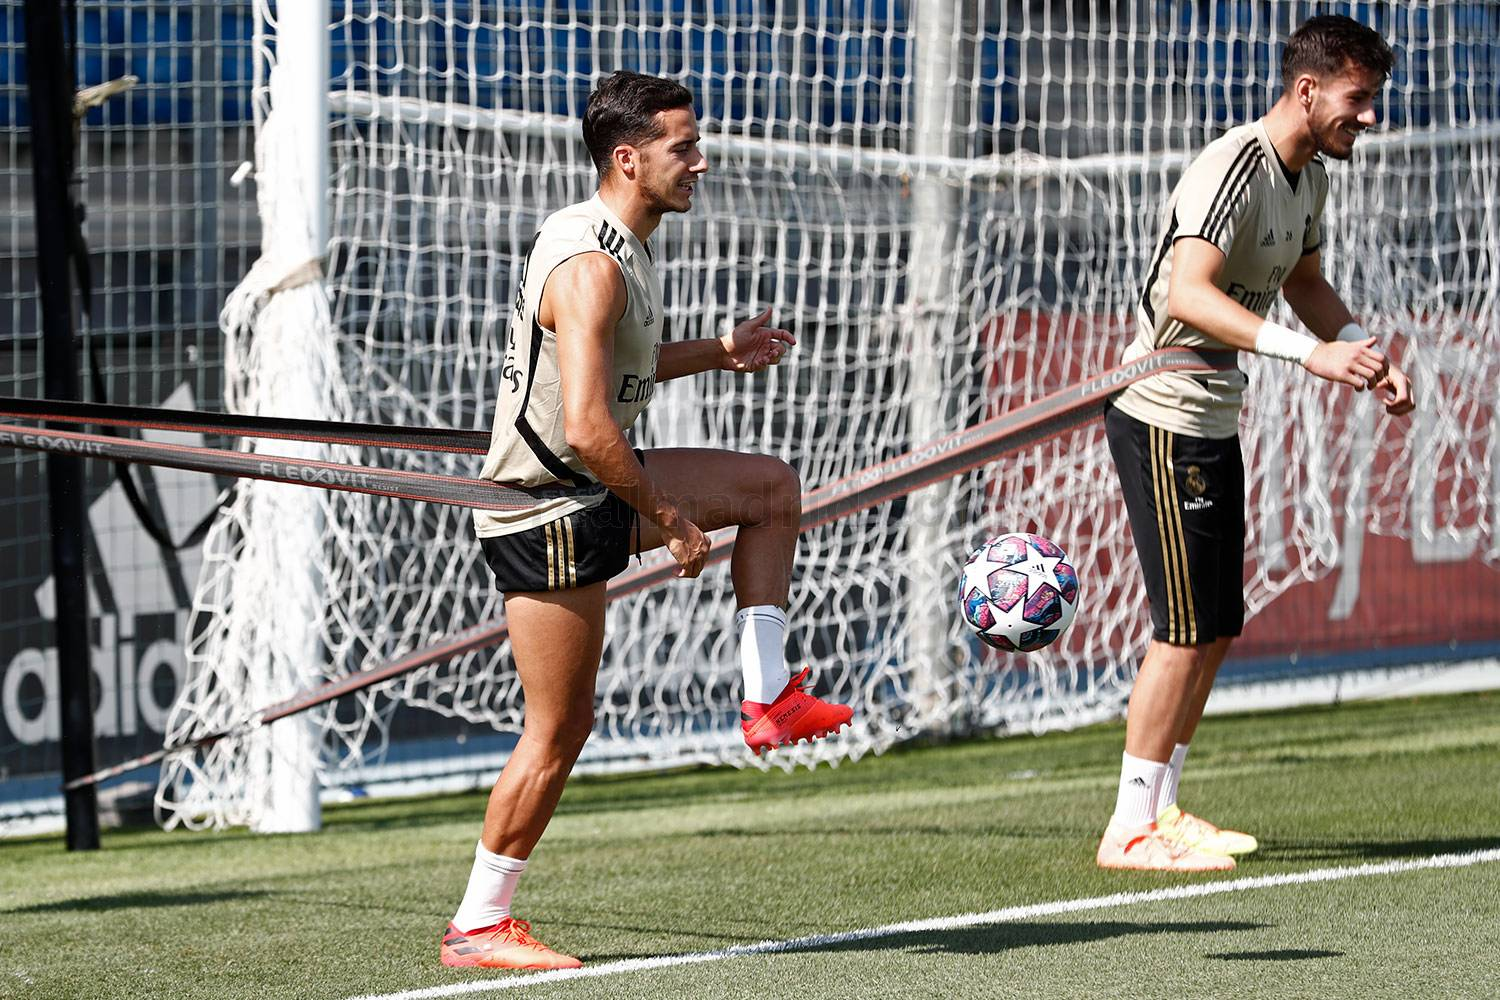 Real Madrid - Entrenamiento del Real Madrid  - 28-07-2020